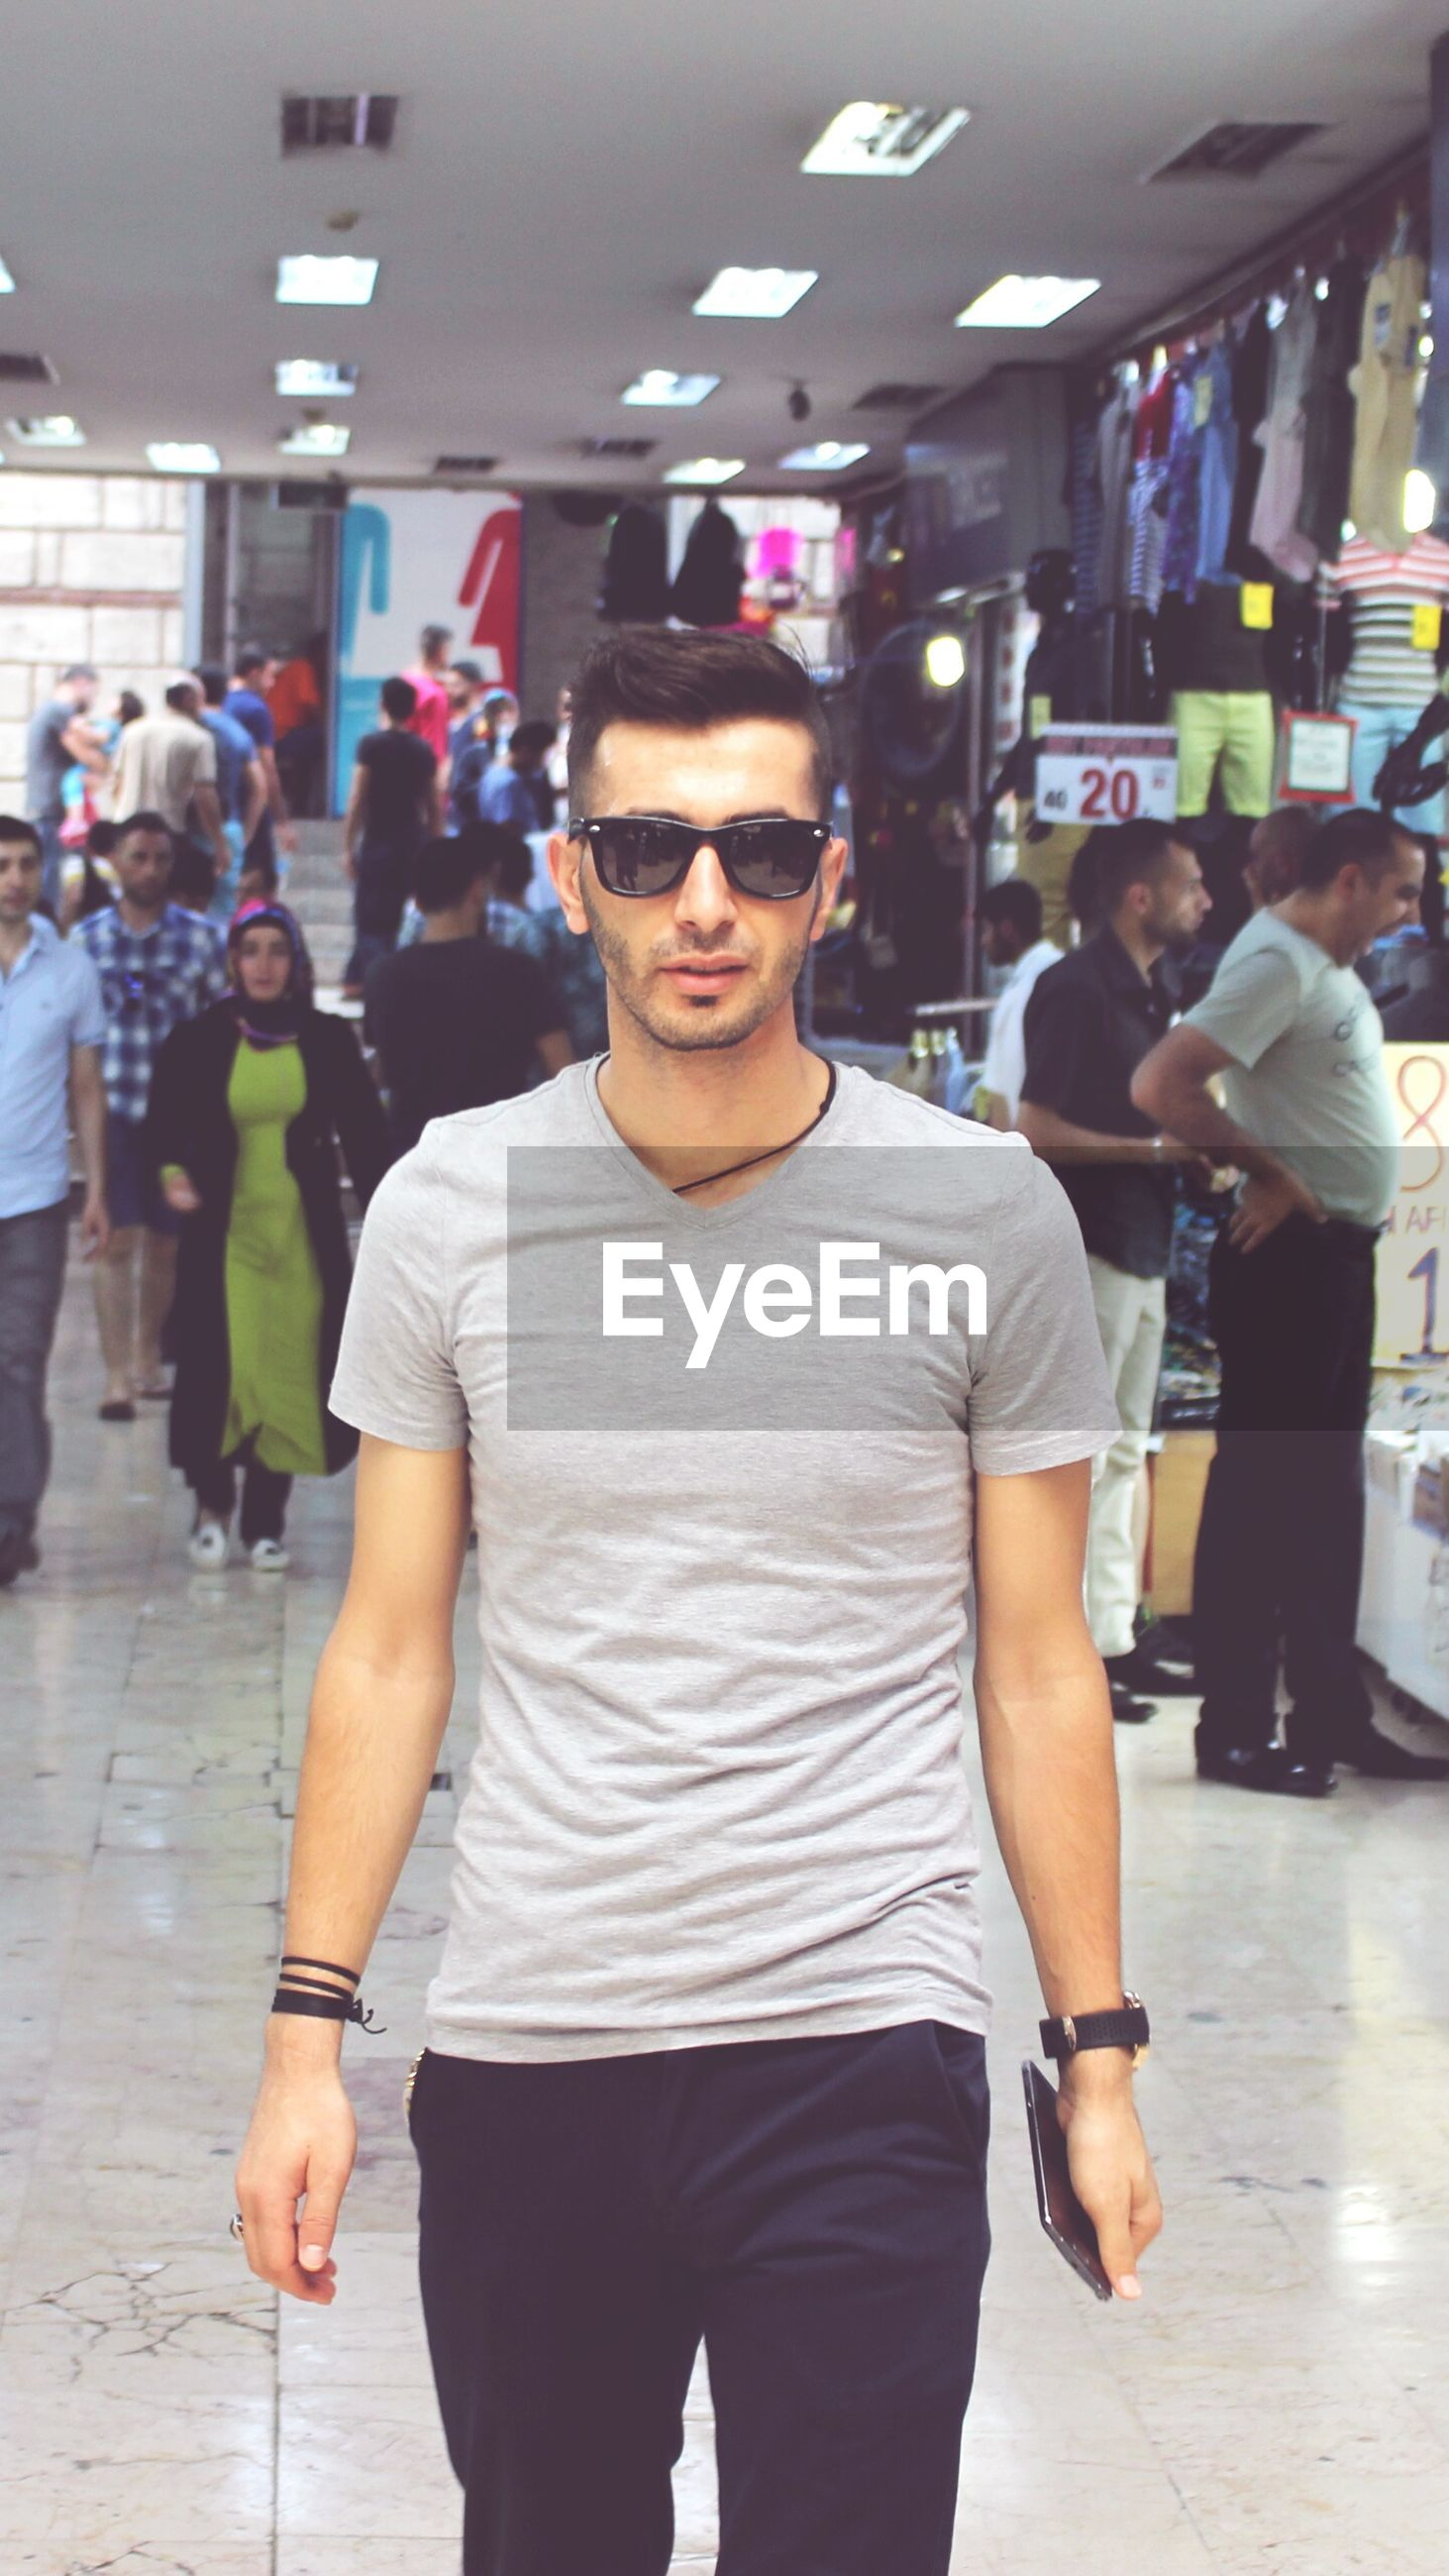 lifestyles, indoors, casual clothing, young adult, standing, leisure activity, front view, young men, portrait, looking at camera, person, three quarter length, technology, holding, communication, sunglasses, photography themes, waist up